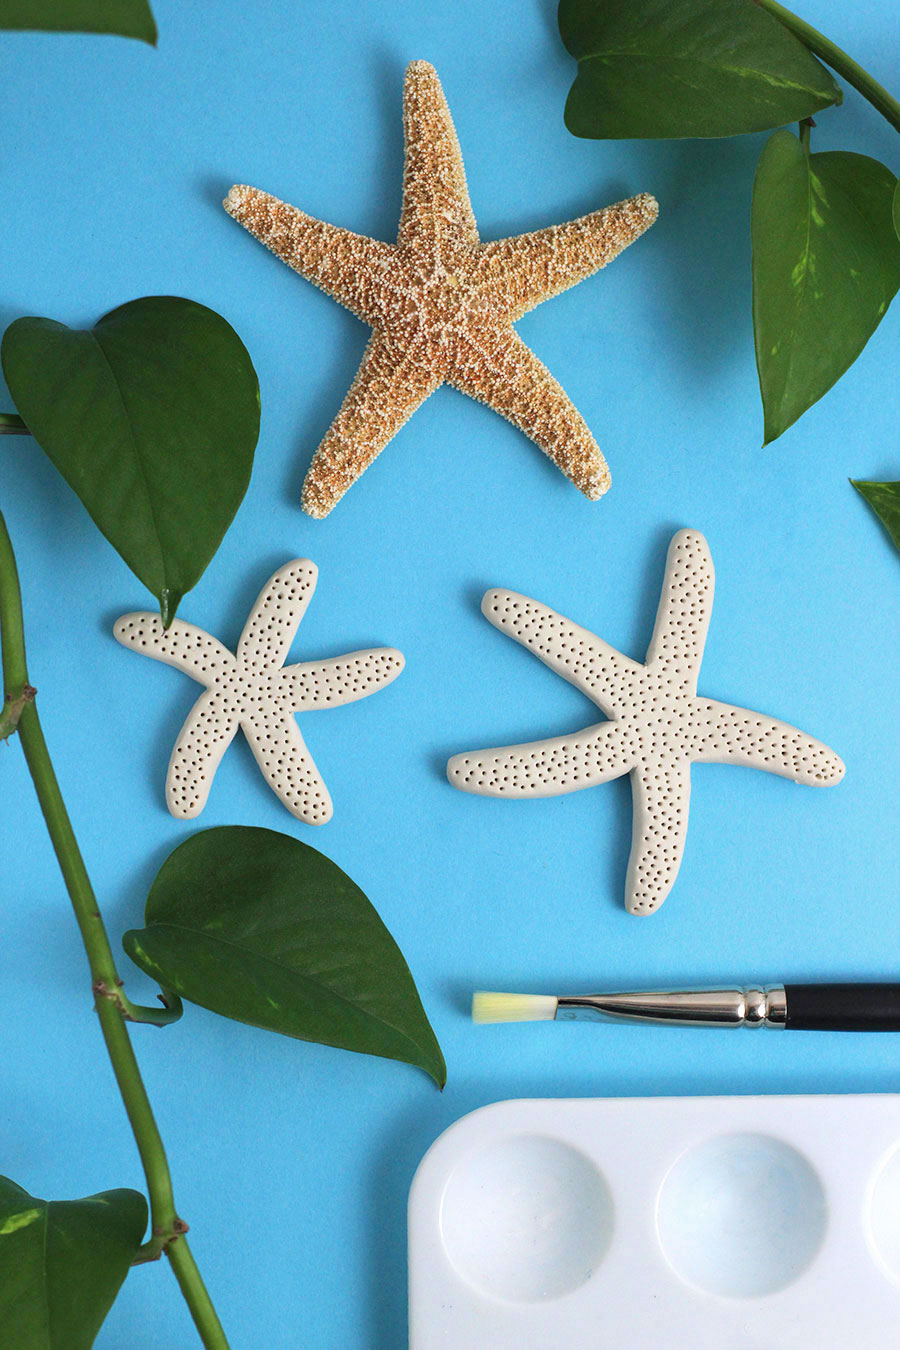 How to make faux starfish with clay. Super easy step-by-step on how to create faux starfish from scratch. Great for crafts, home decor projects, or just for fun! Click through to find out how.